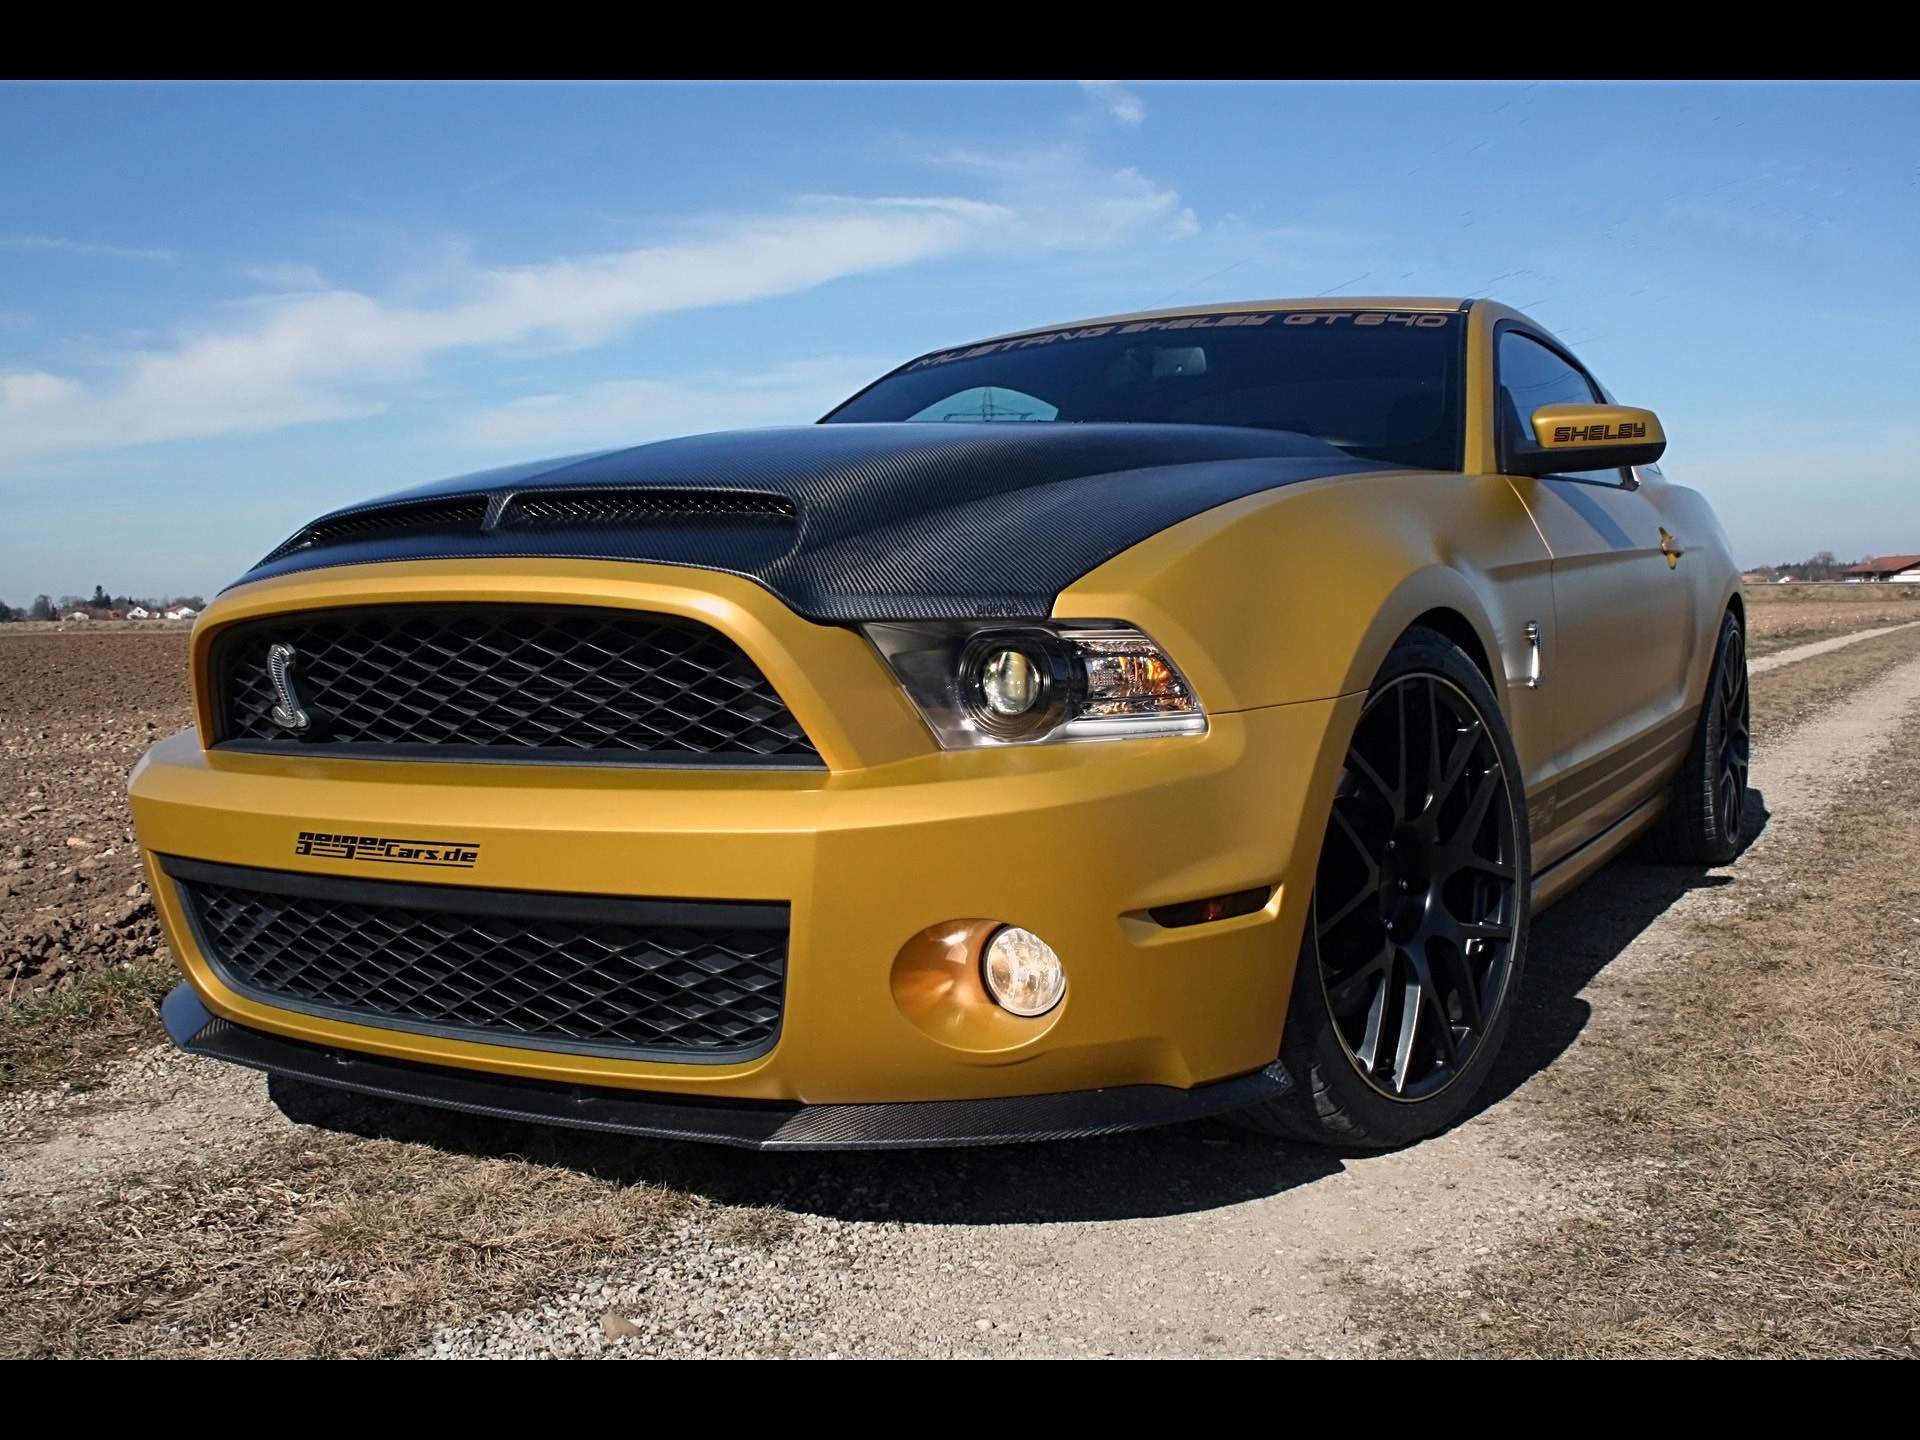 cars golden vehicles Ford HD Wallpaper